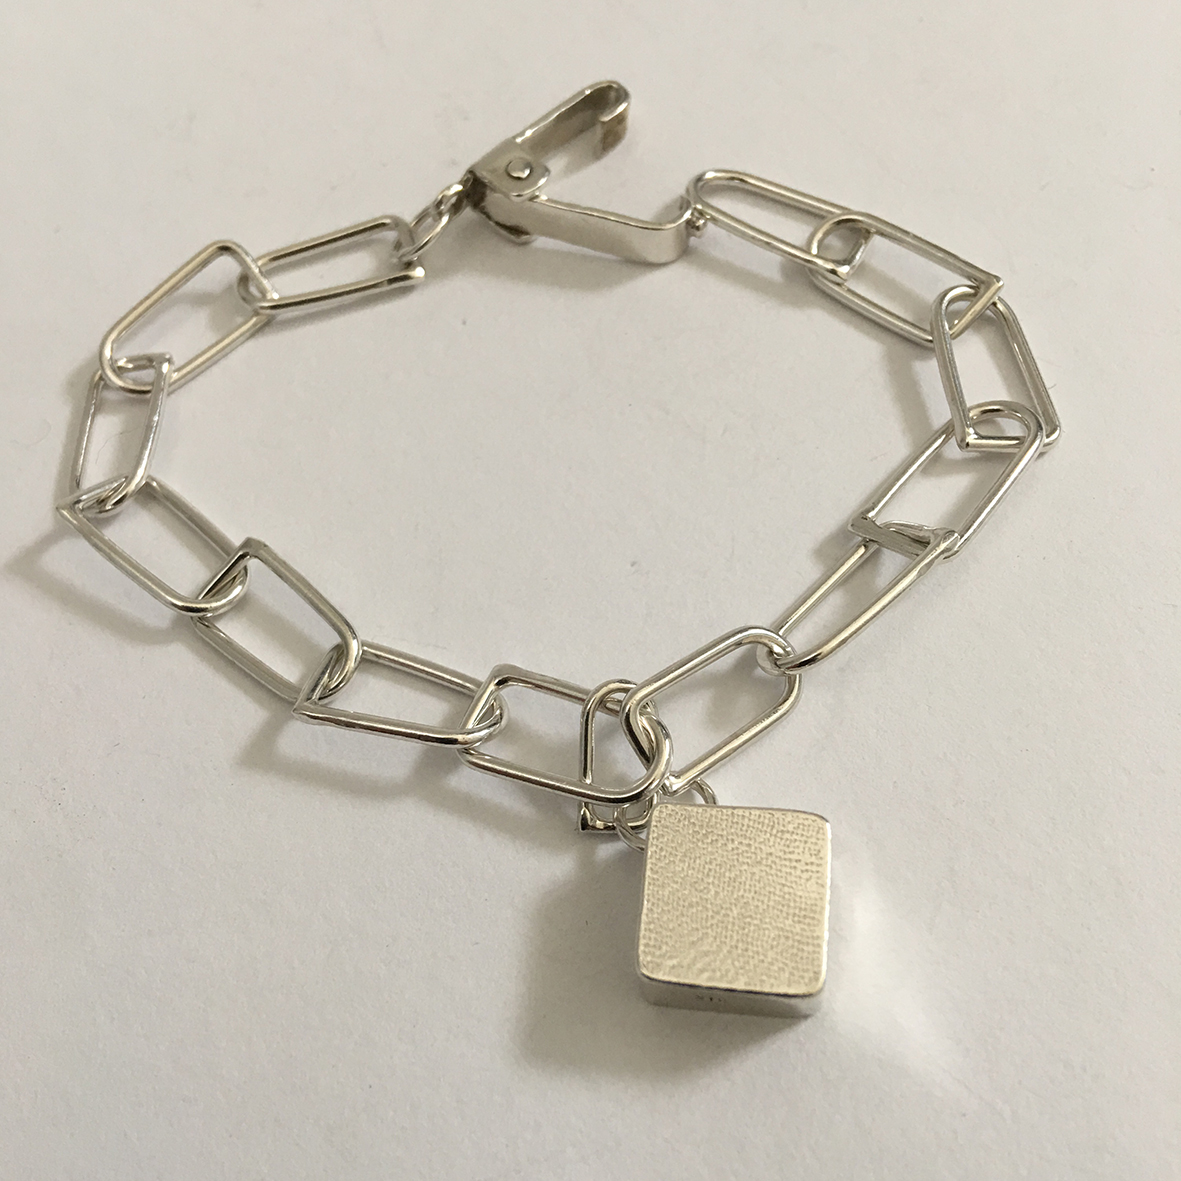 Chain Reaction – D Link Bracelet Chain with 3D Box Charm in Sterling Silver